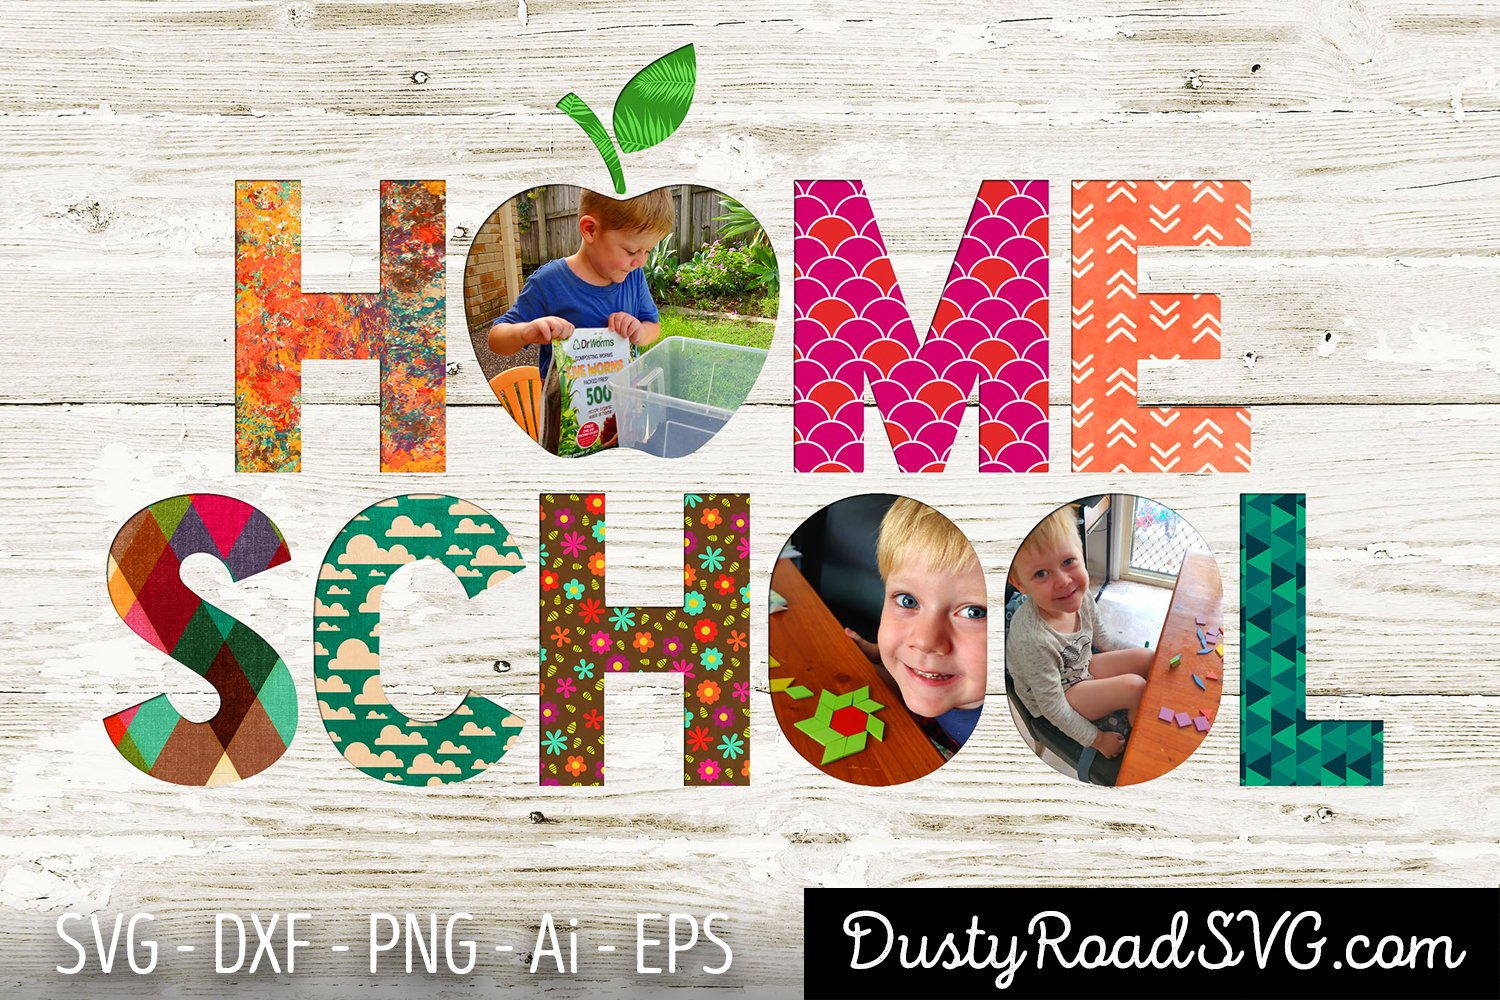 HOME SCHOOL - Scrapbook - cut file - svg png eps dxf example image 3